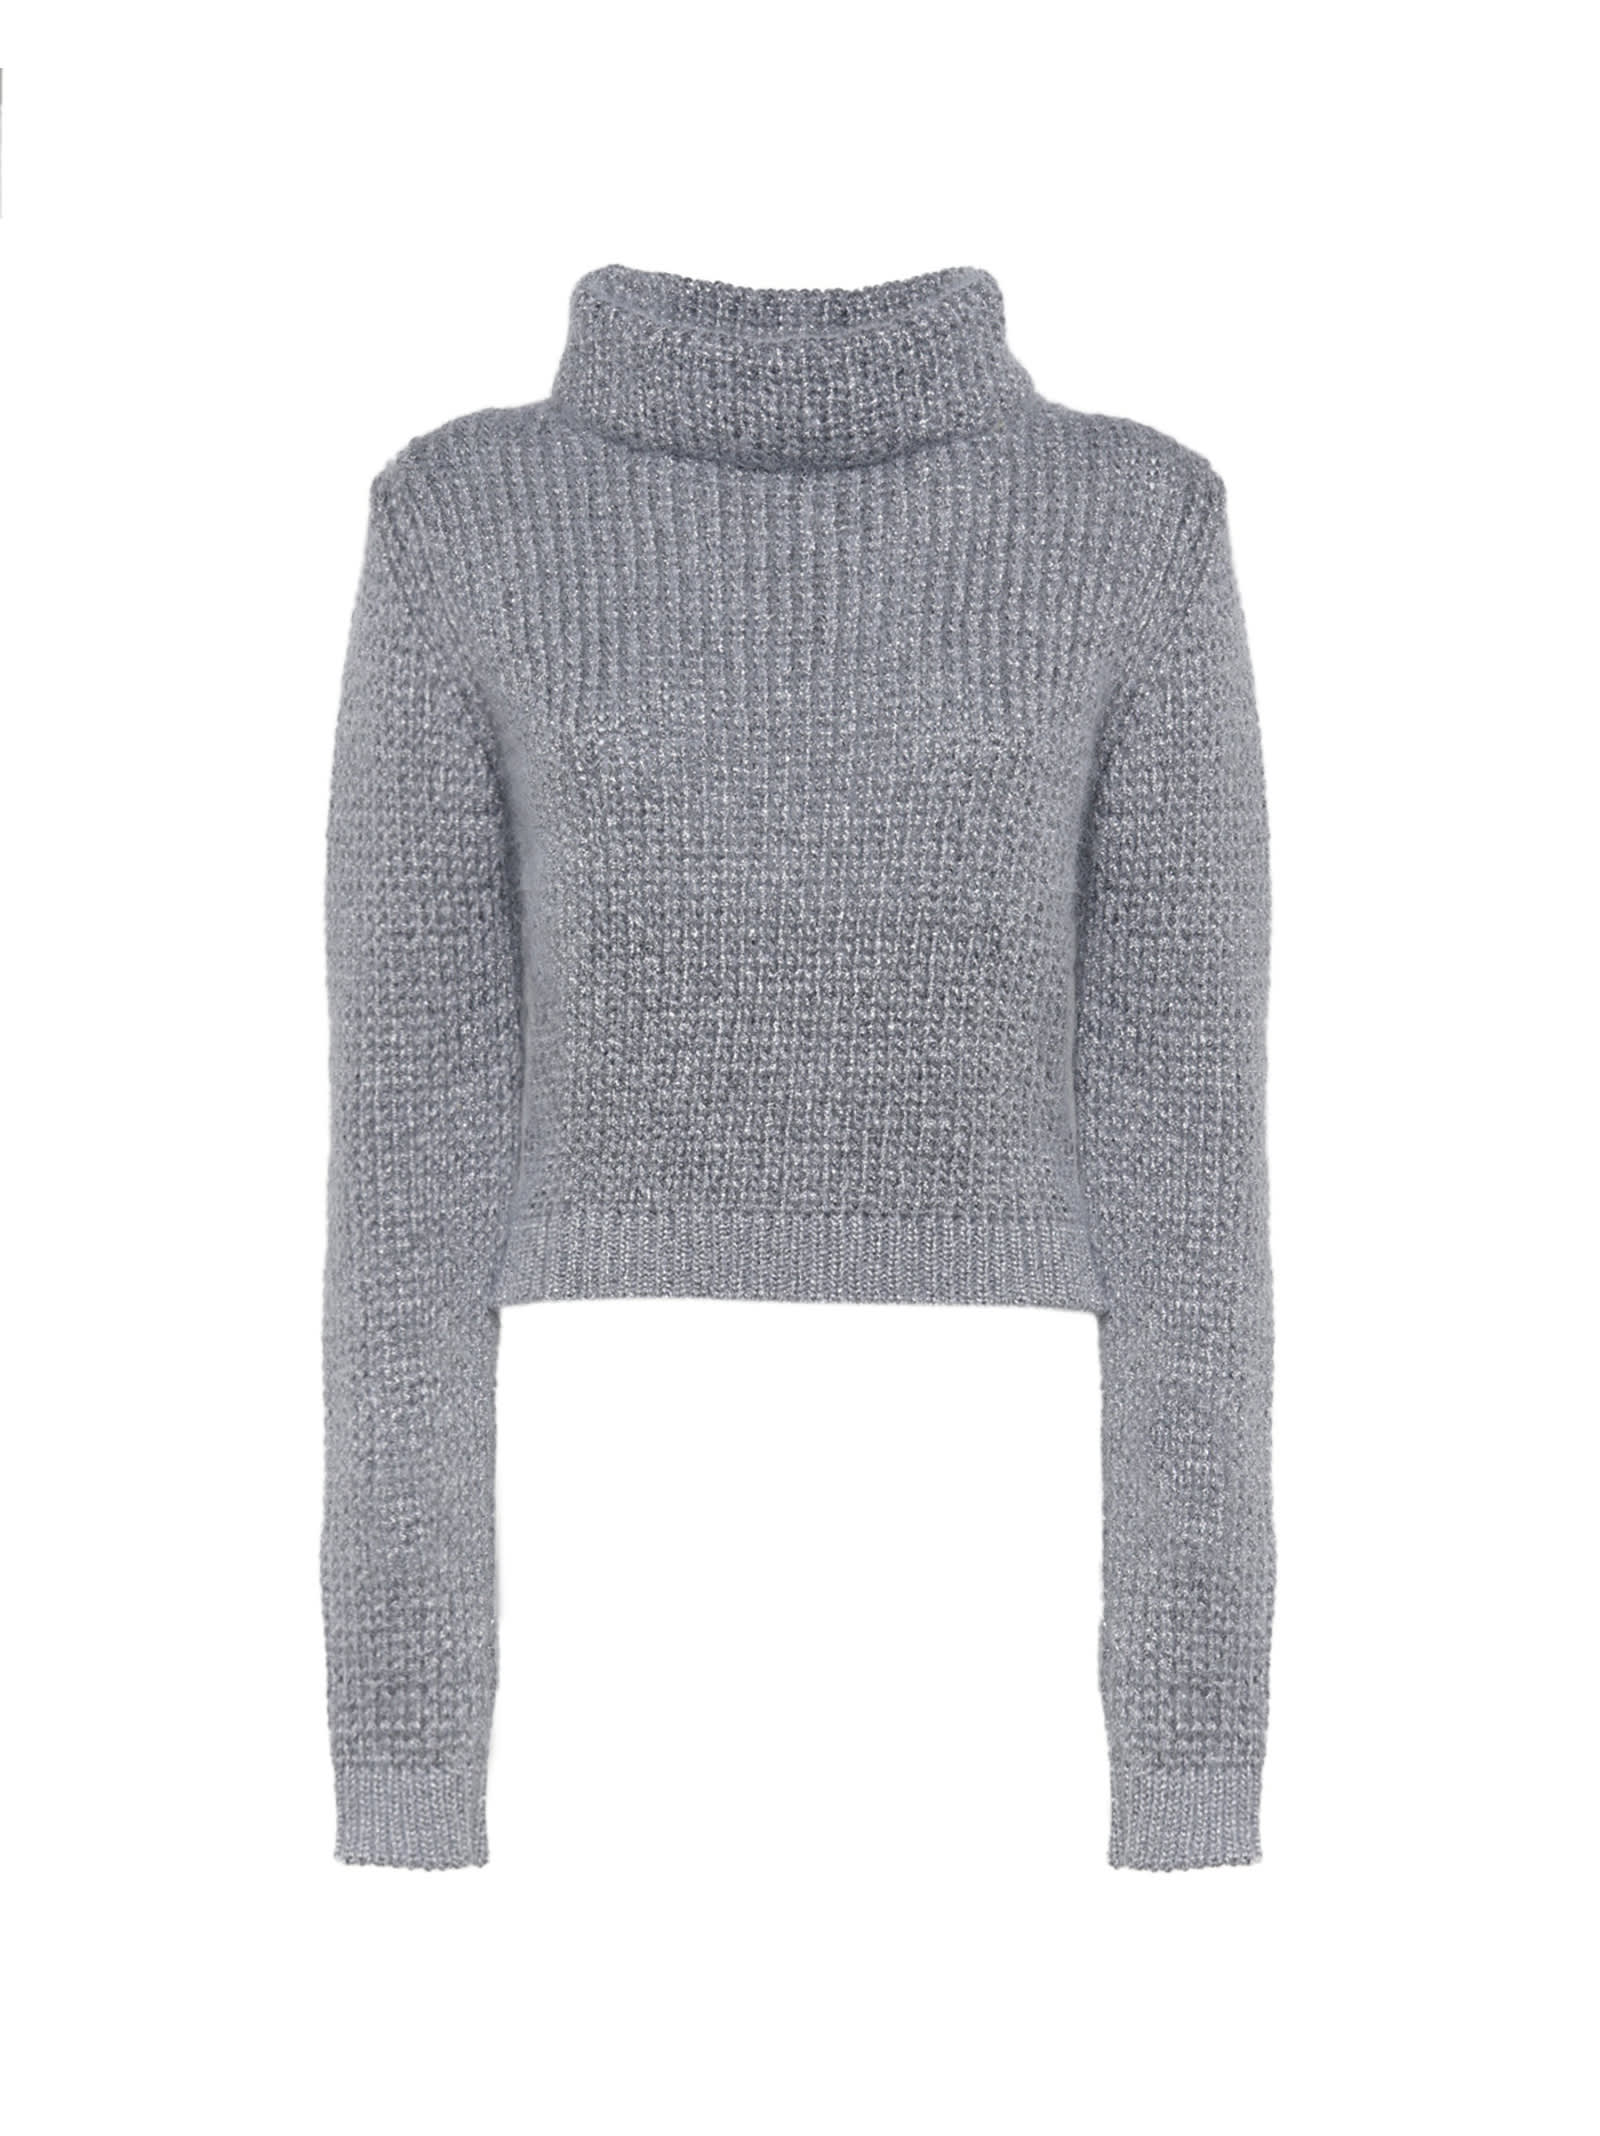 Wool And Lamé-trimmed Sweater